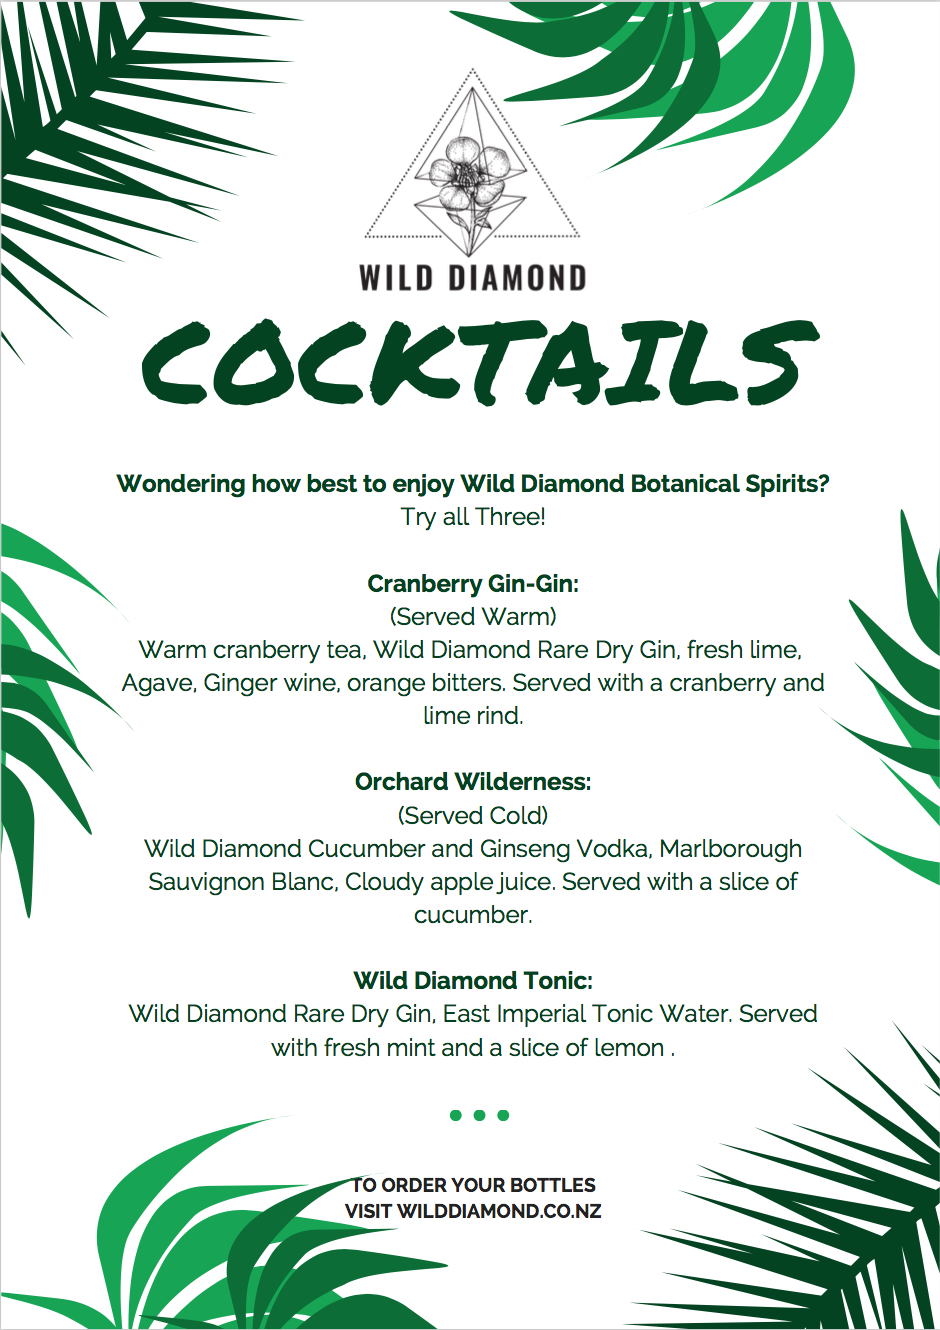 wild-diamond-cocktails-website